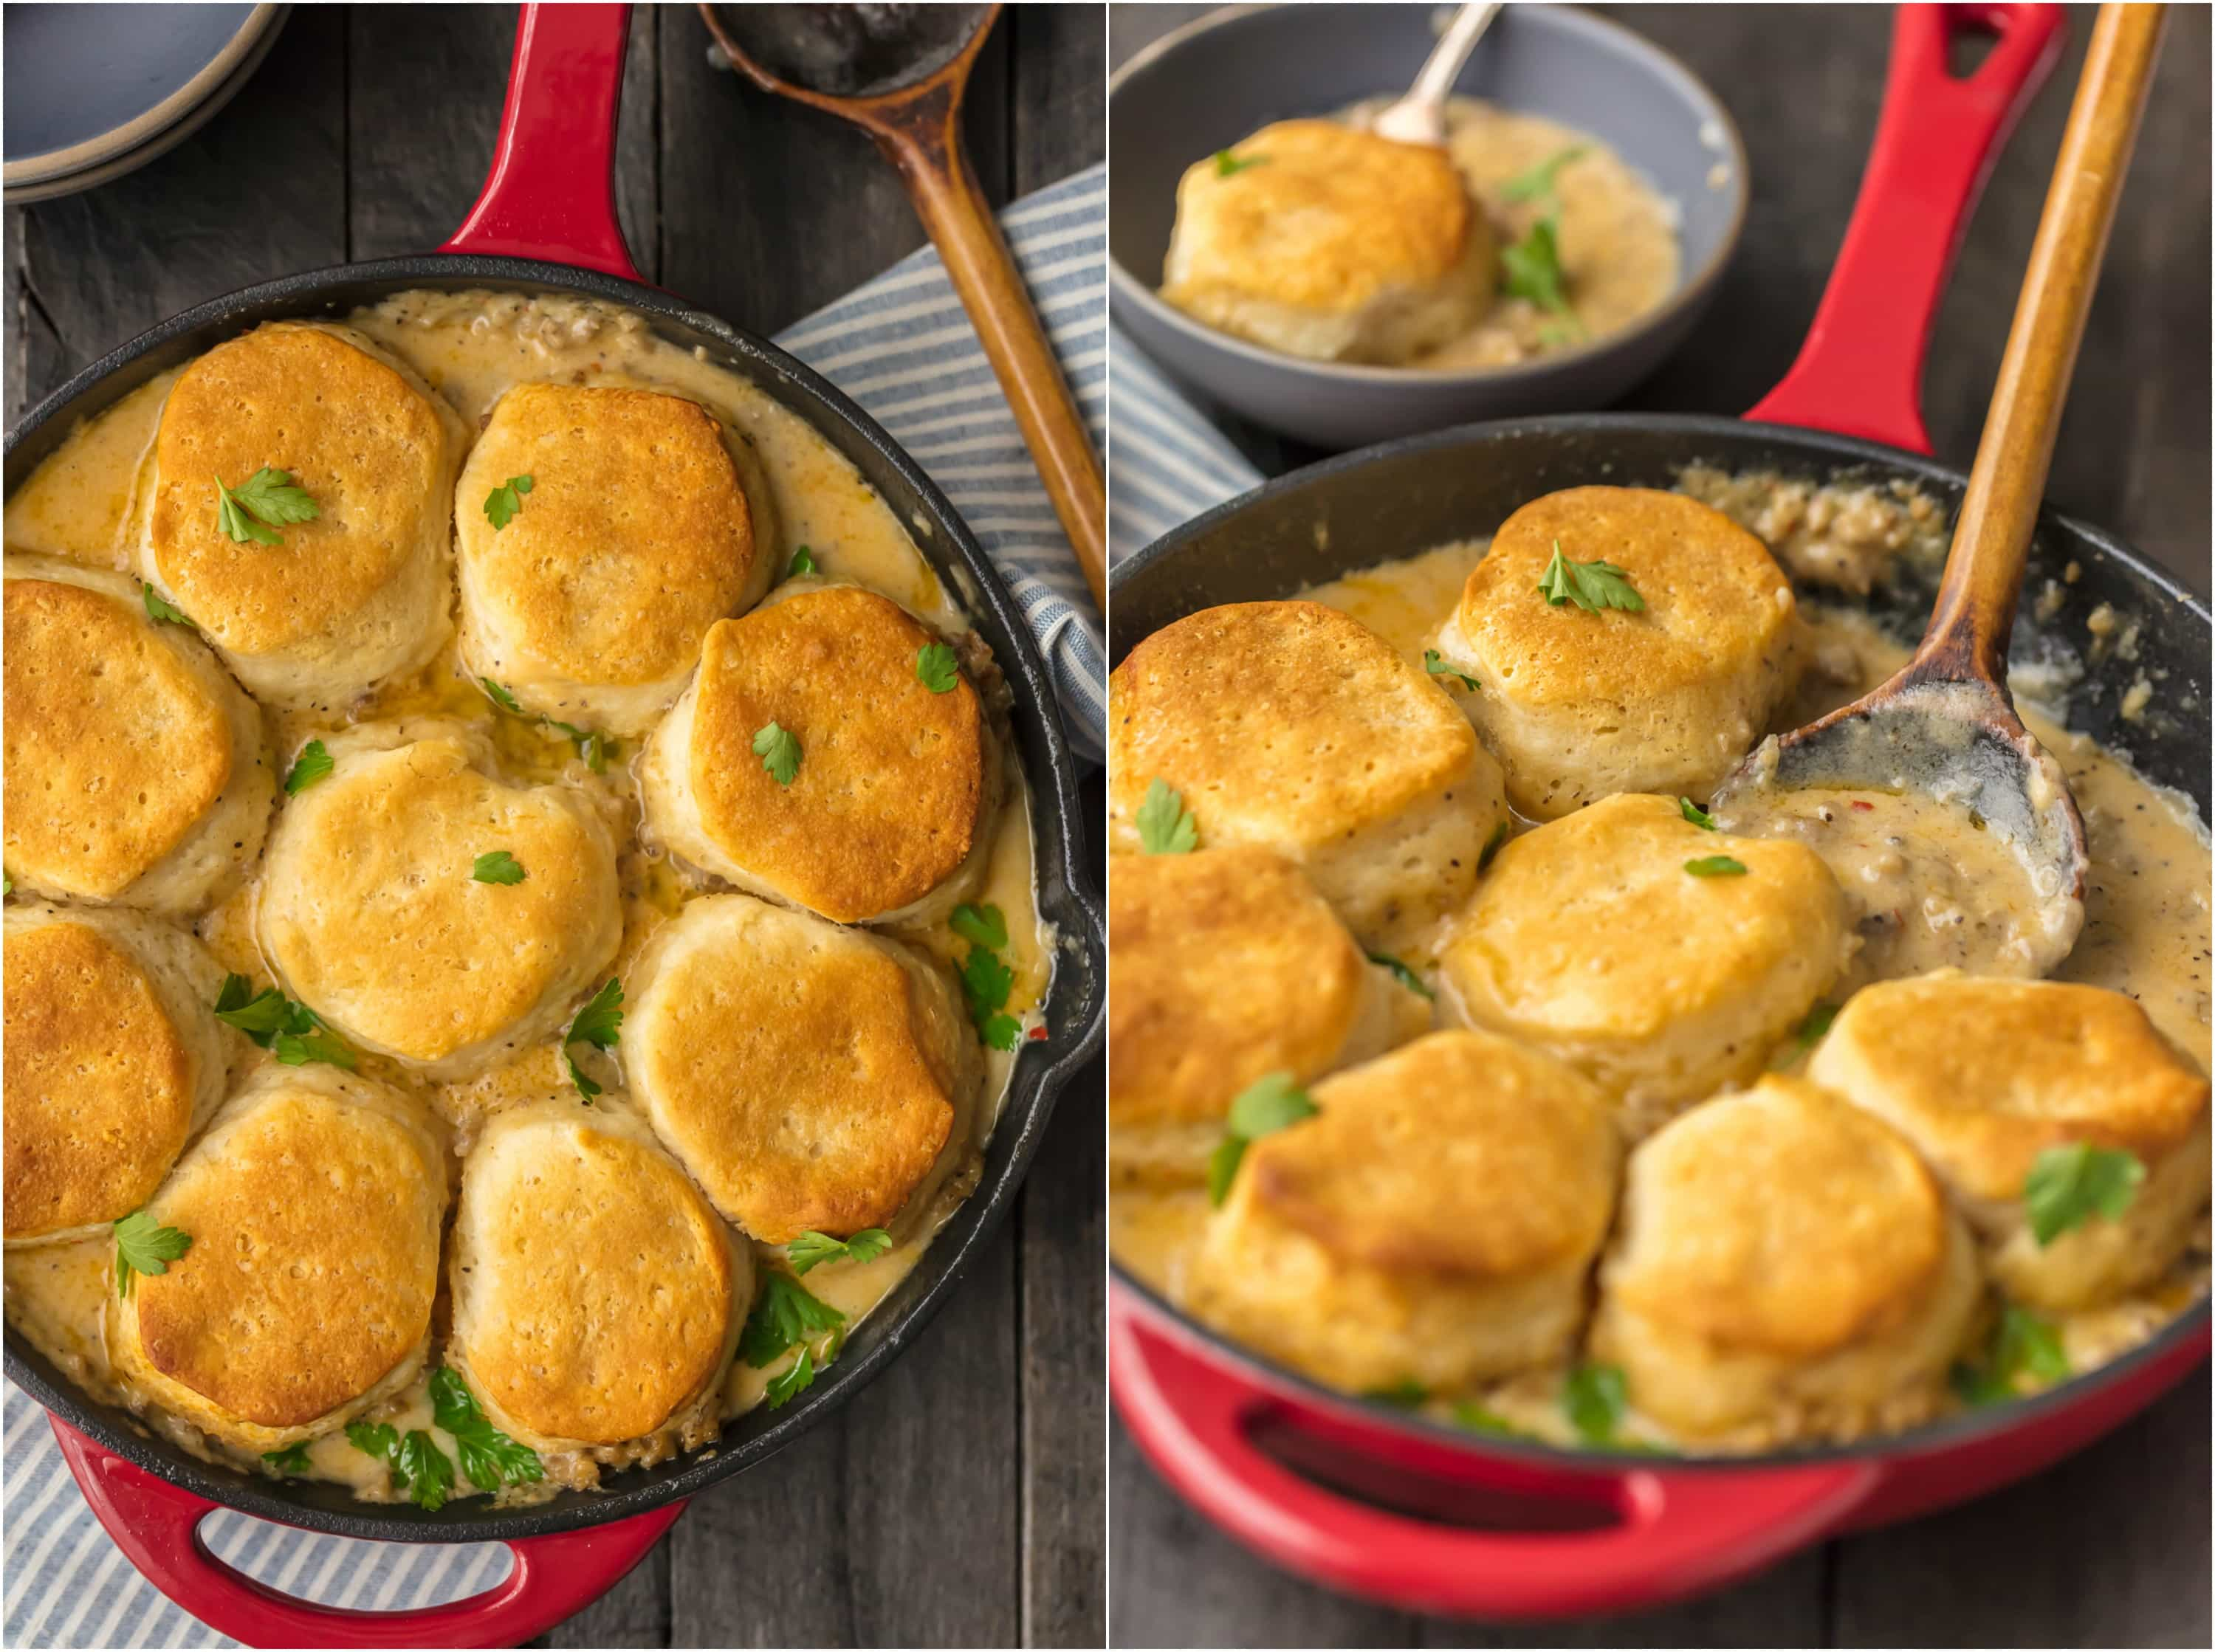 SAUSAGE BISCUITS AND GRAVY SKILLET COBBLER! So easy and delicious! This is our very favorite Christmas morning breakfast and for good reason! Holiday comfort food at its finest.